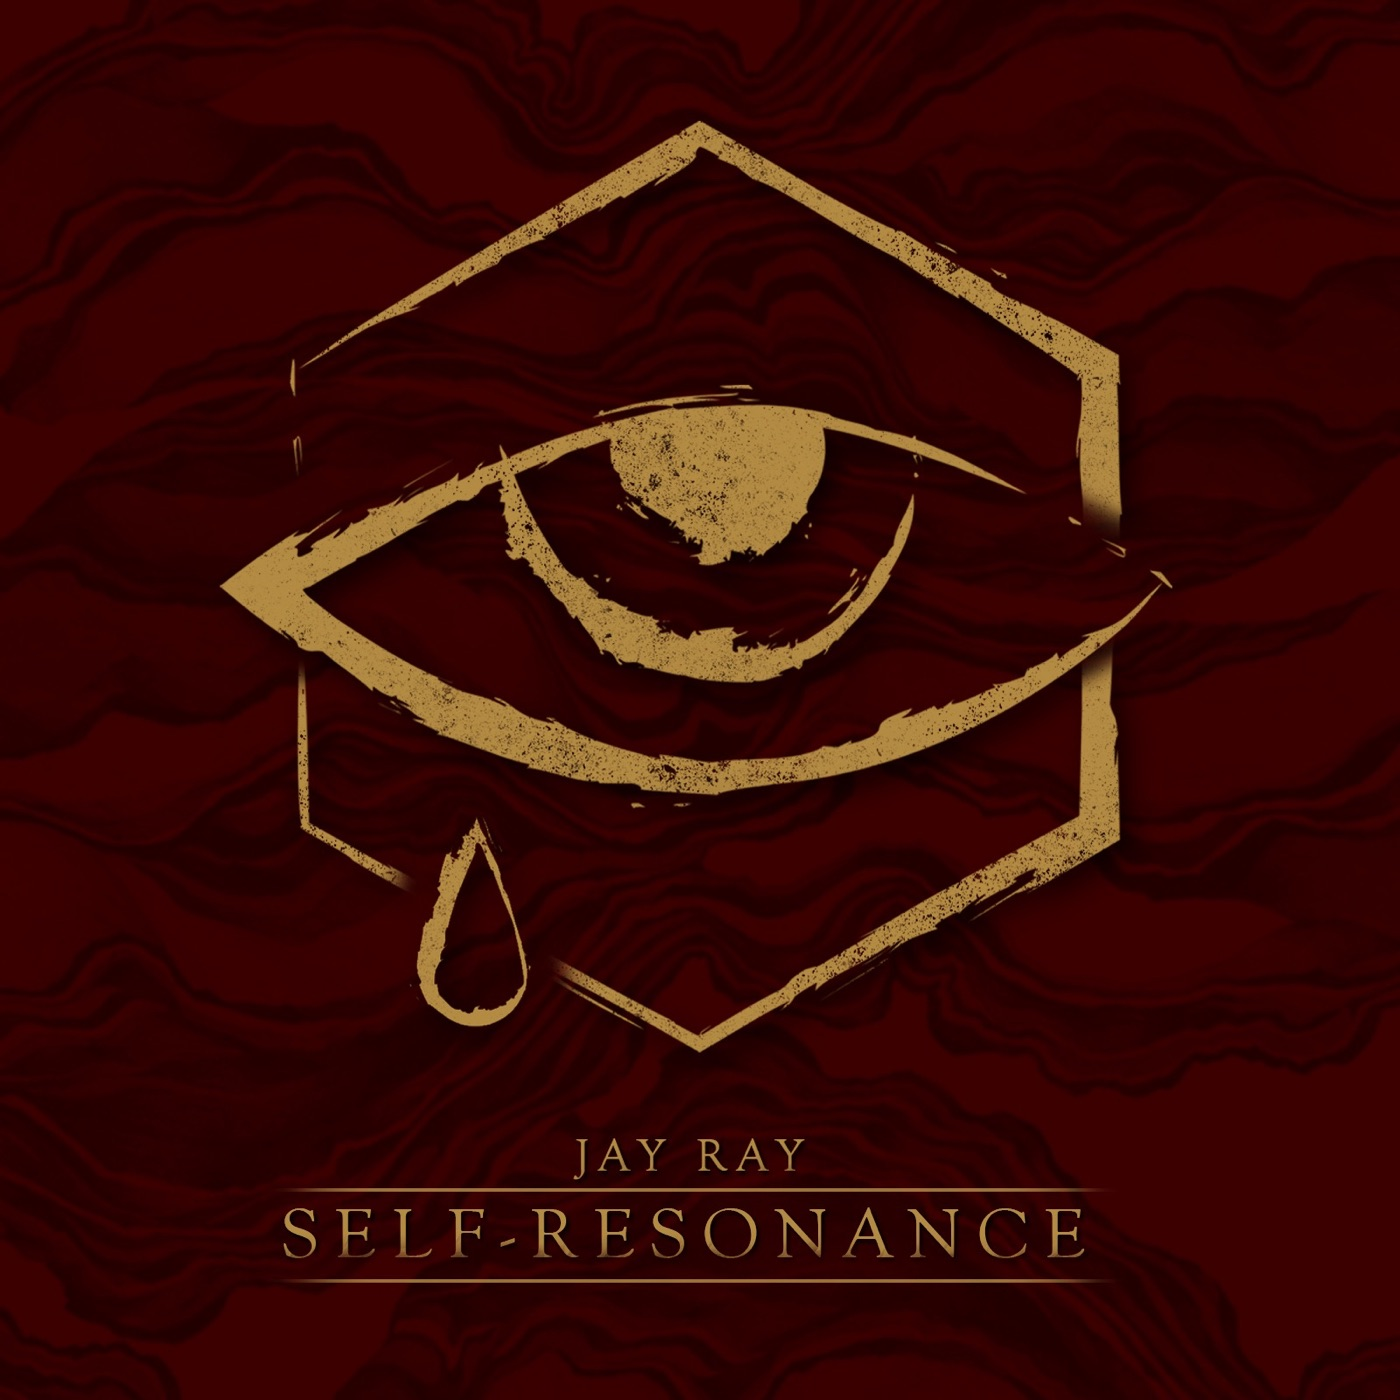 Jay Ray - Self Resonance [Deluxe Edition] (2017)